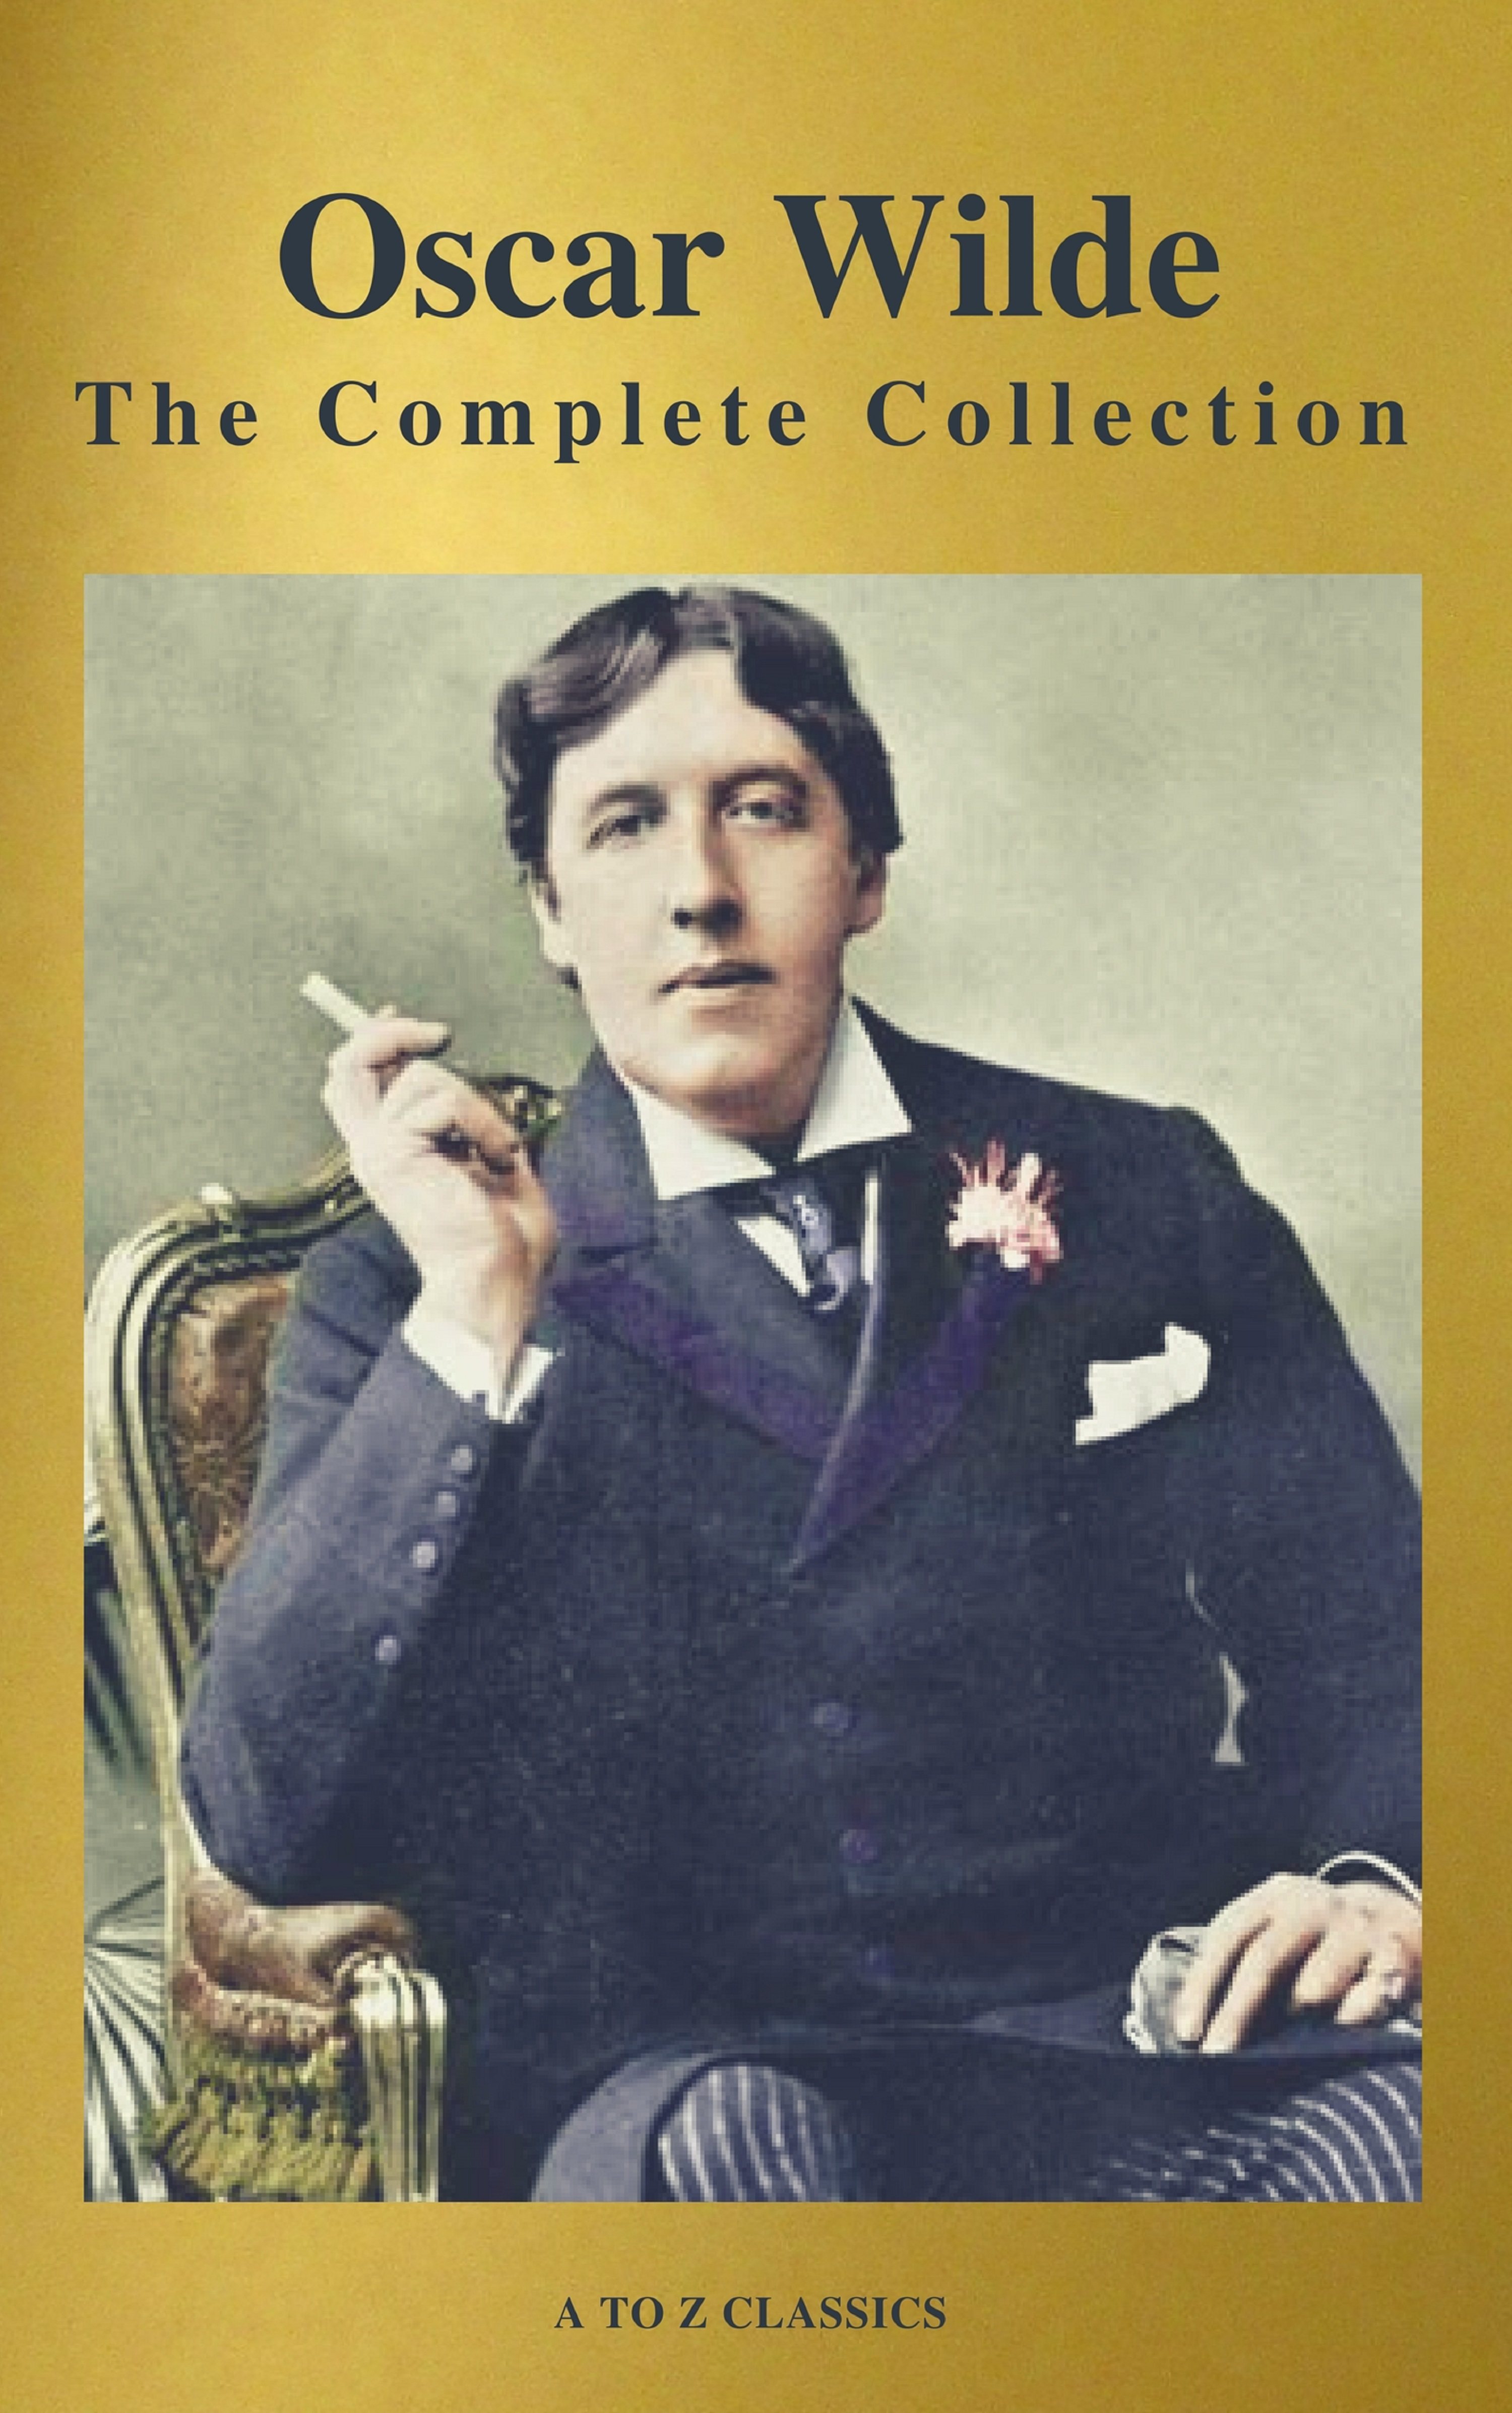 Оскар Уайльд Oscar Wilde: The Complete Collection (Best Navigation) (A to Z Classics) merlin holland oscar wilde a life in letters